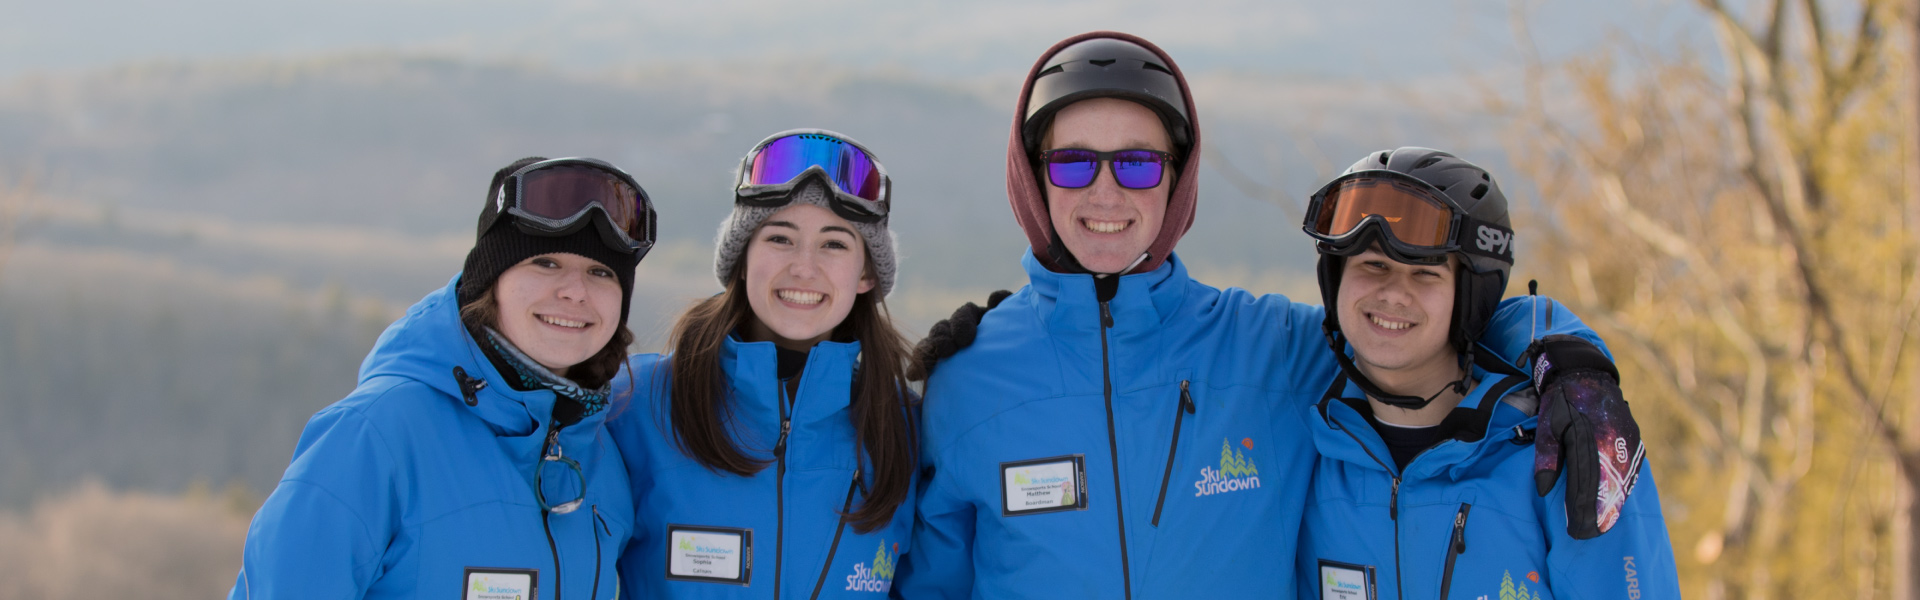 Image of 4 ski instructors